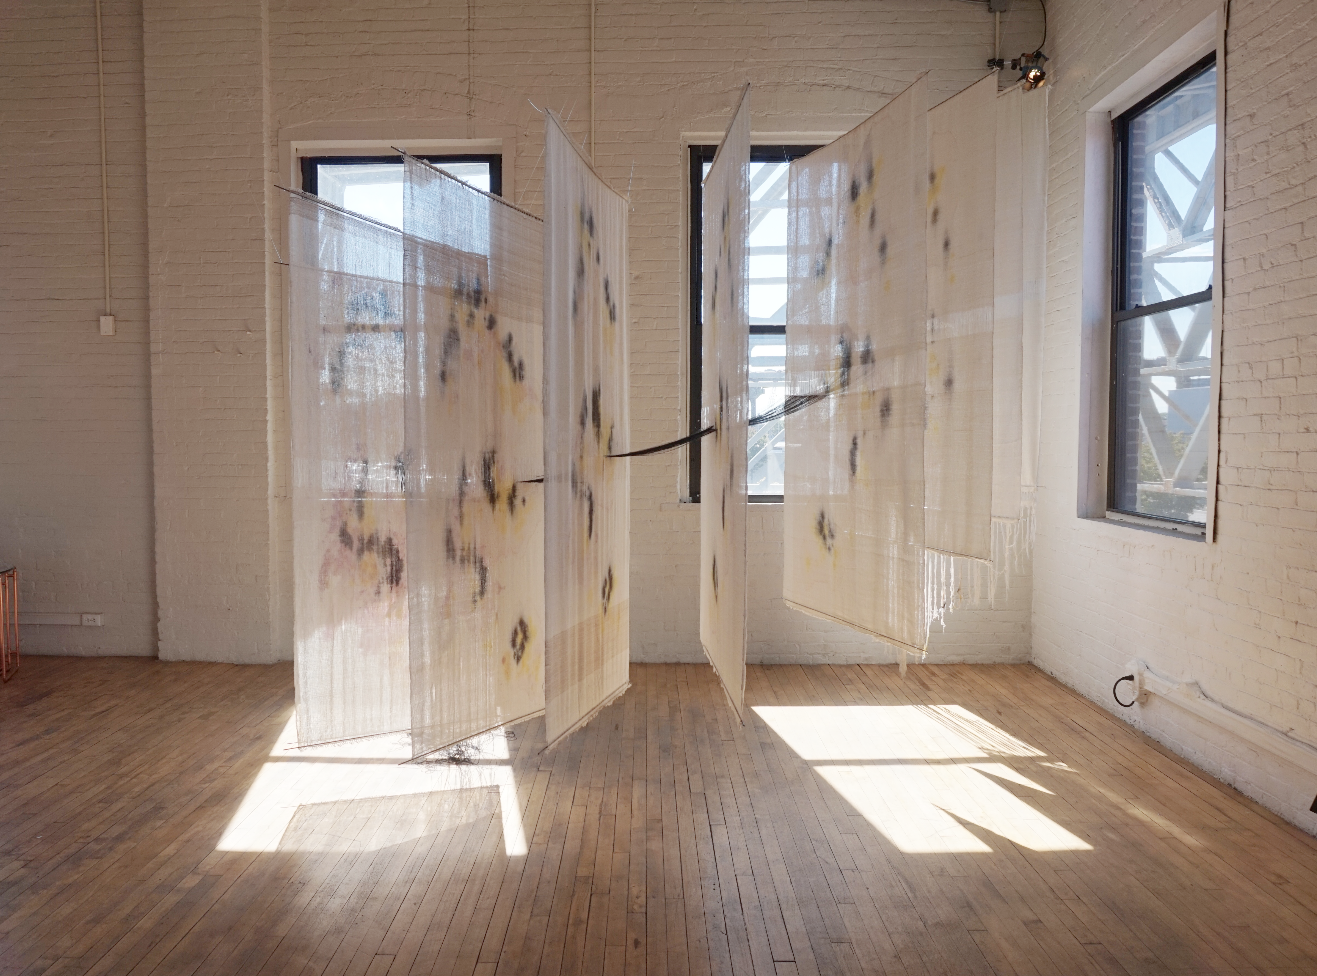 Axis  Natural fibers, synthetic fibers, dye 11' x 12' x 6' Image courtesy of the  artist's website.